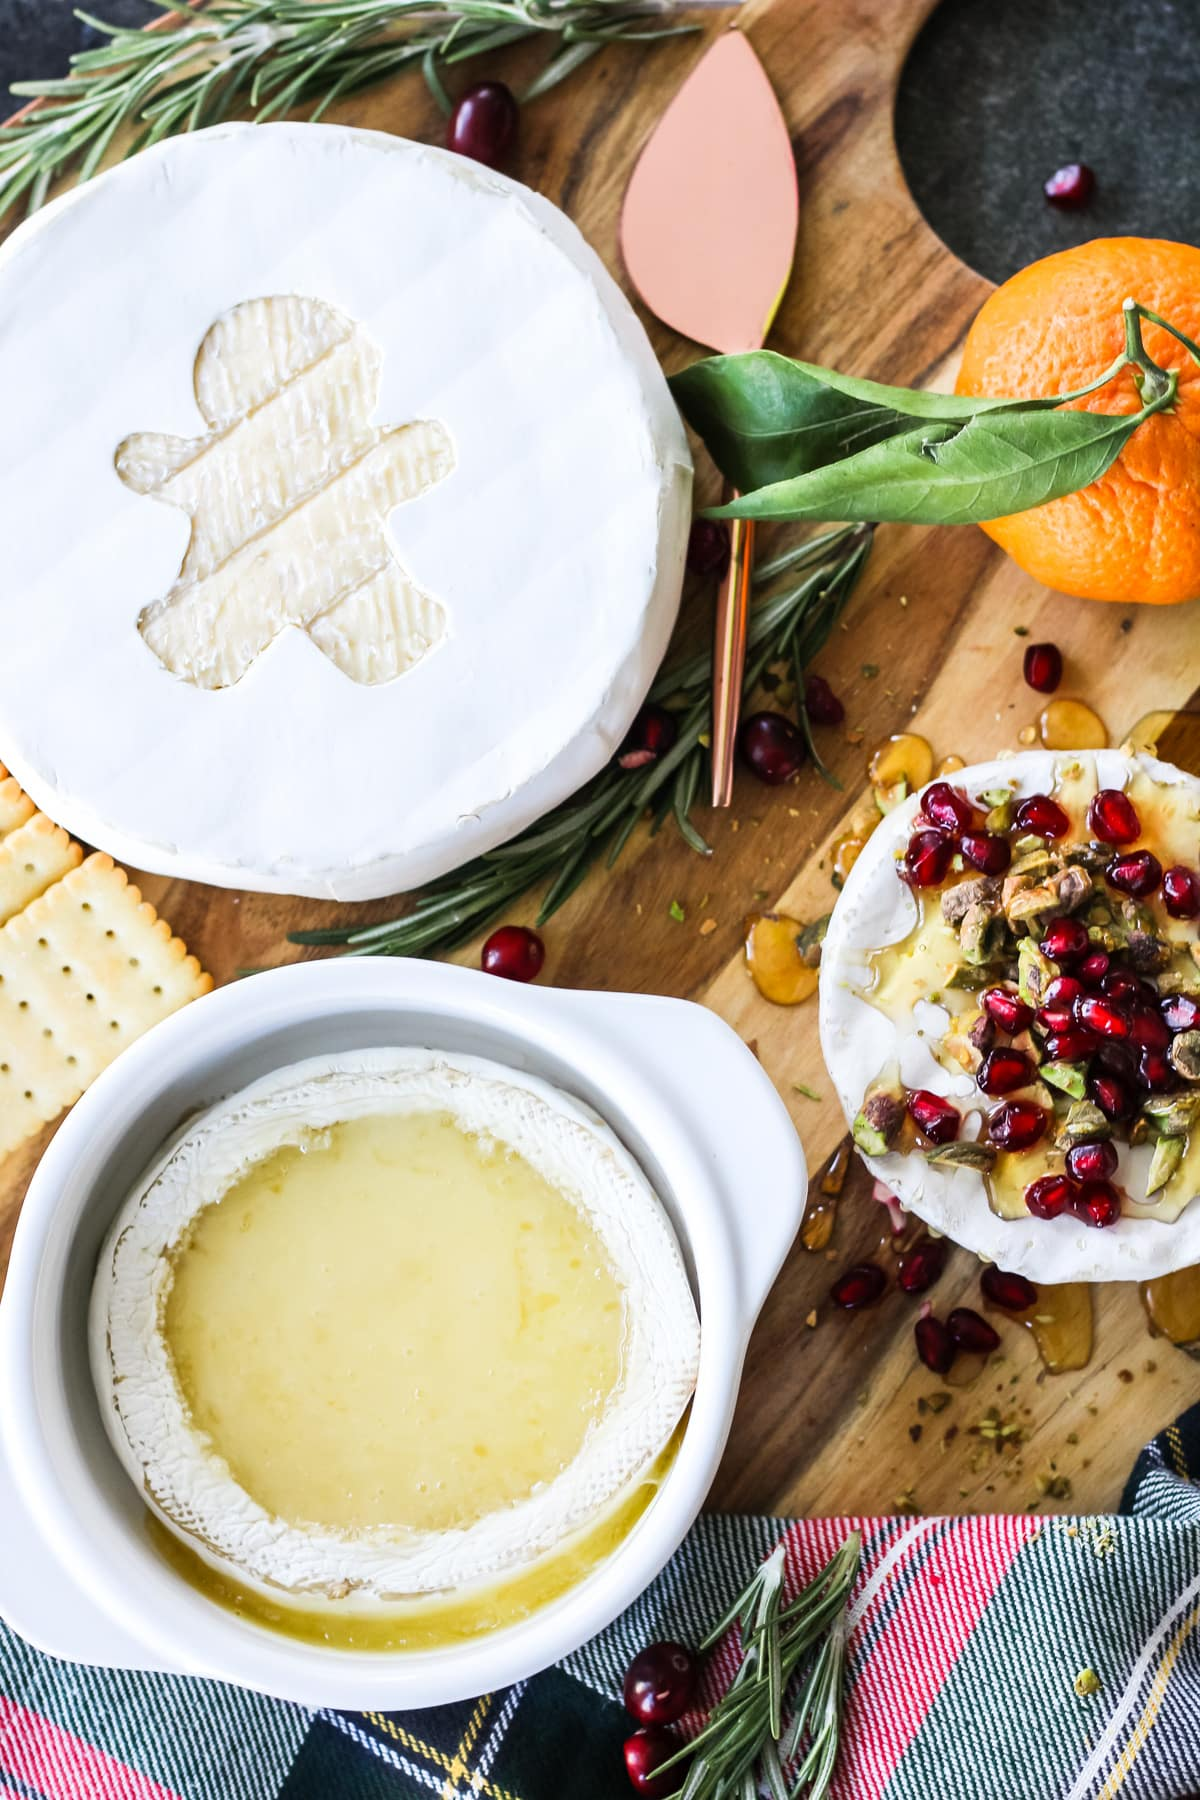 A cheese board with a baked Brie fondue, a wheel of Brie cheese with a gingerbread cut out and a small brie covered with honey, pomegranate seeds and pistachios